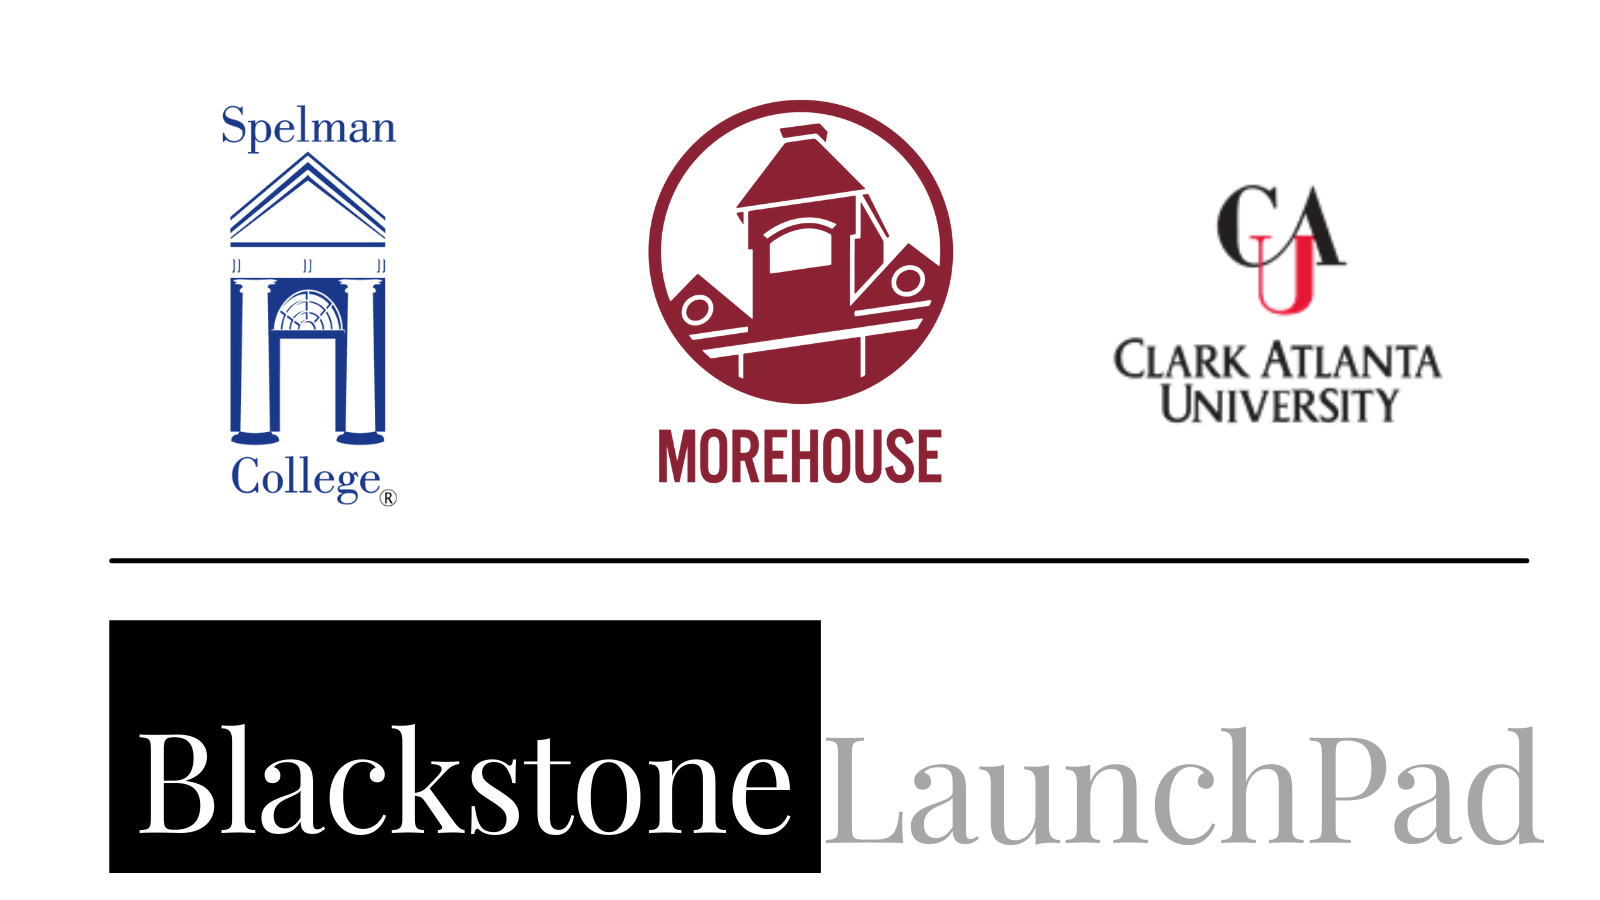 Spelman College and Other Atlanta HBCUs Announce Partnership With Blackstone LaunchPad to Expand Access to Entrepreneurial Skills